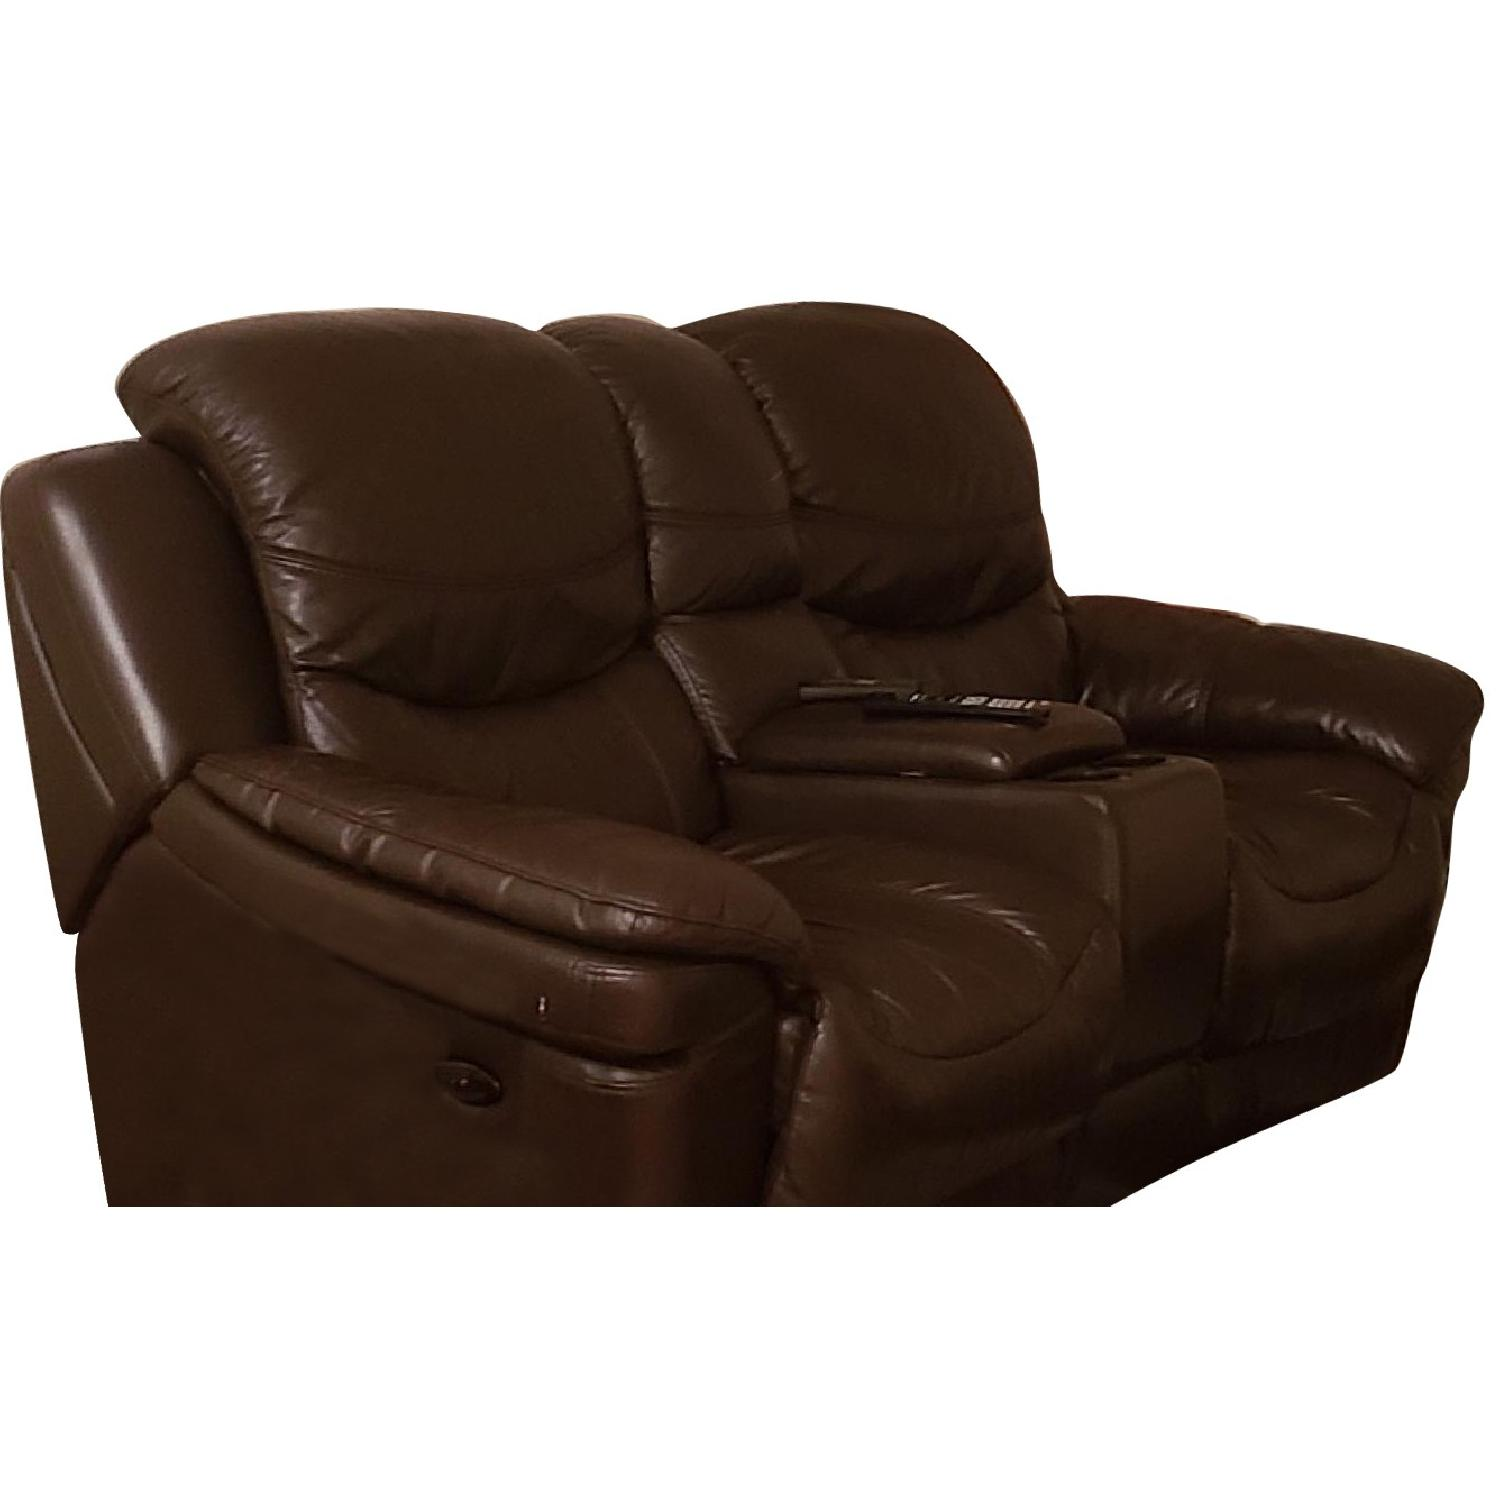 Brown Leather Reclining Sofa - image-0